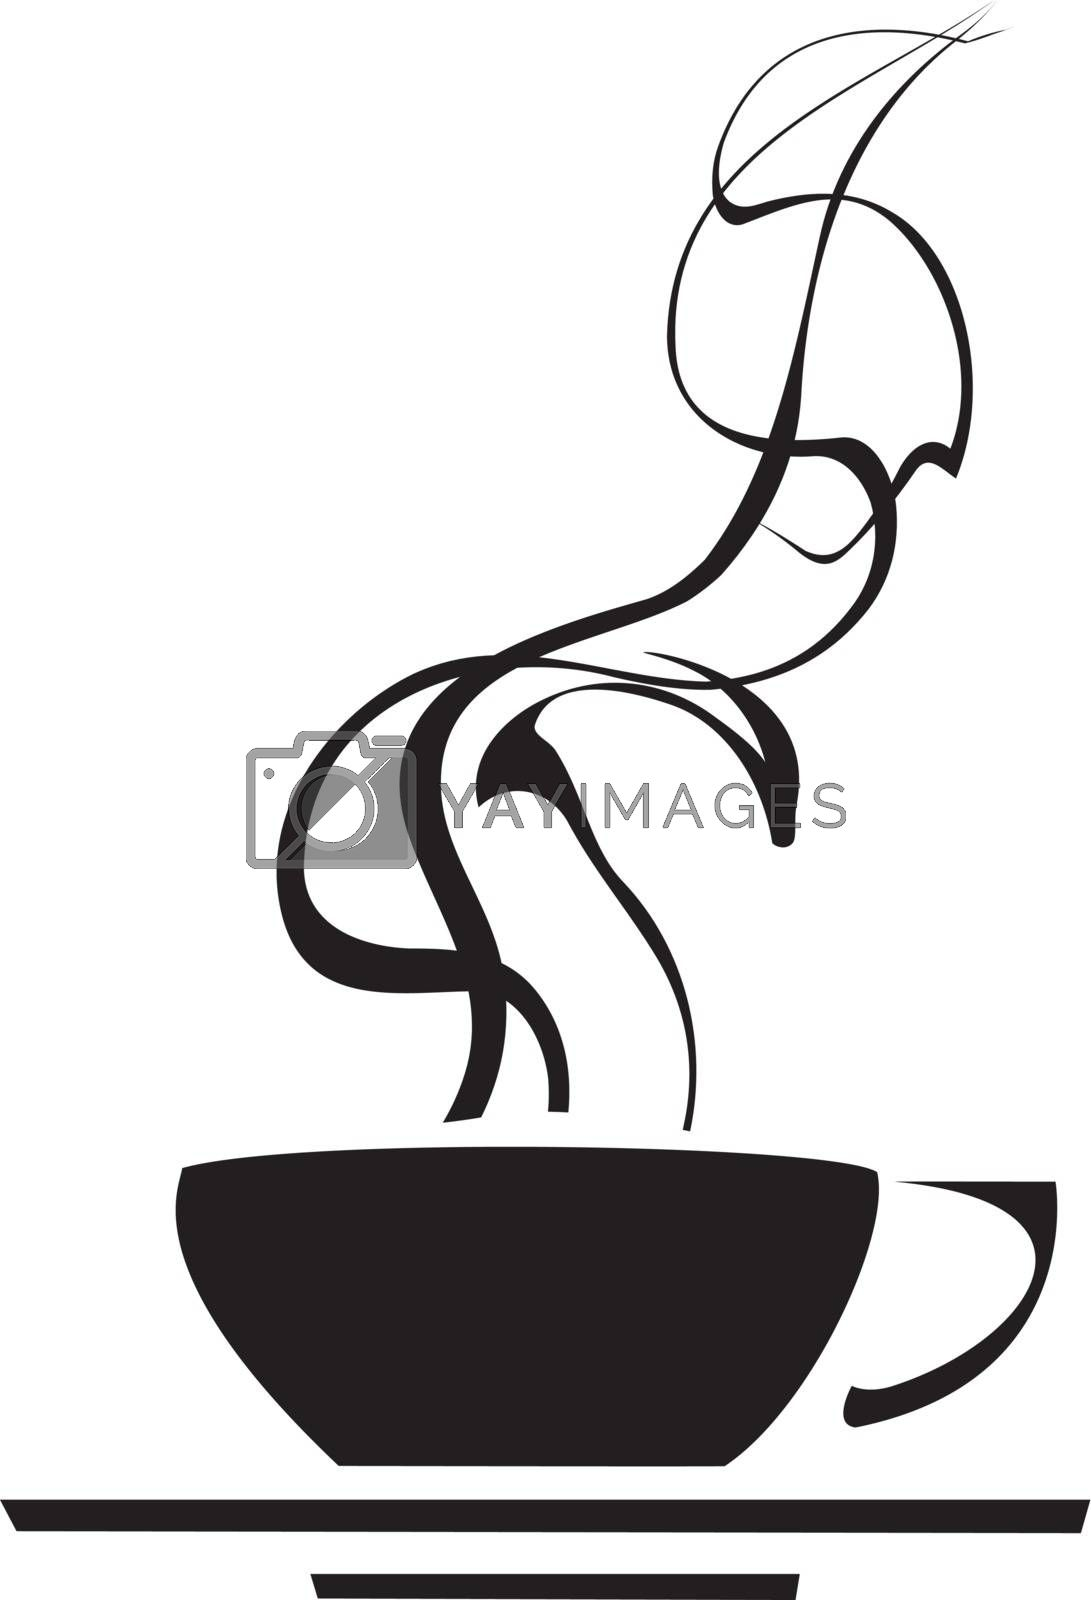 Black and white retro image of a steaming coffee cup.